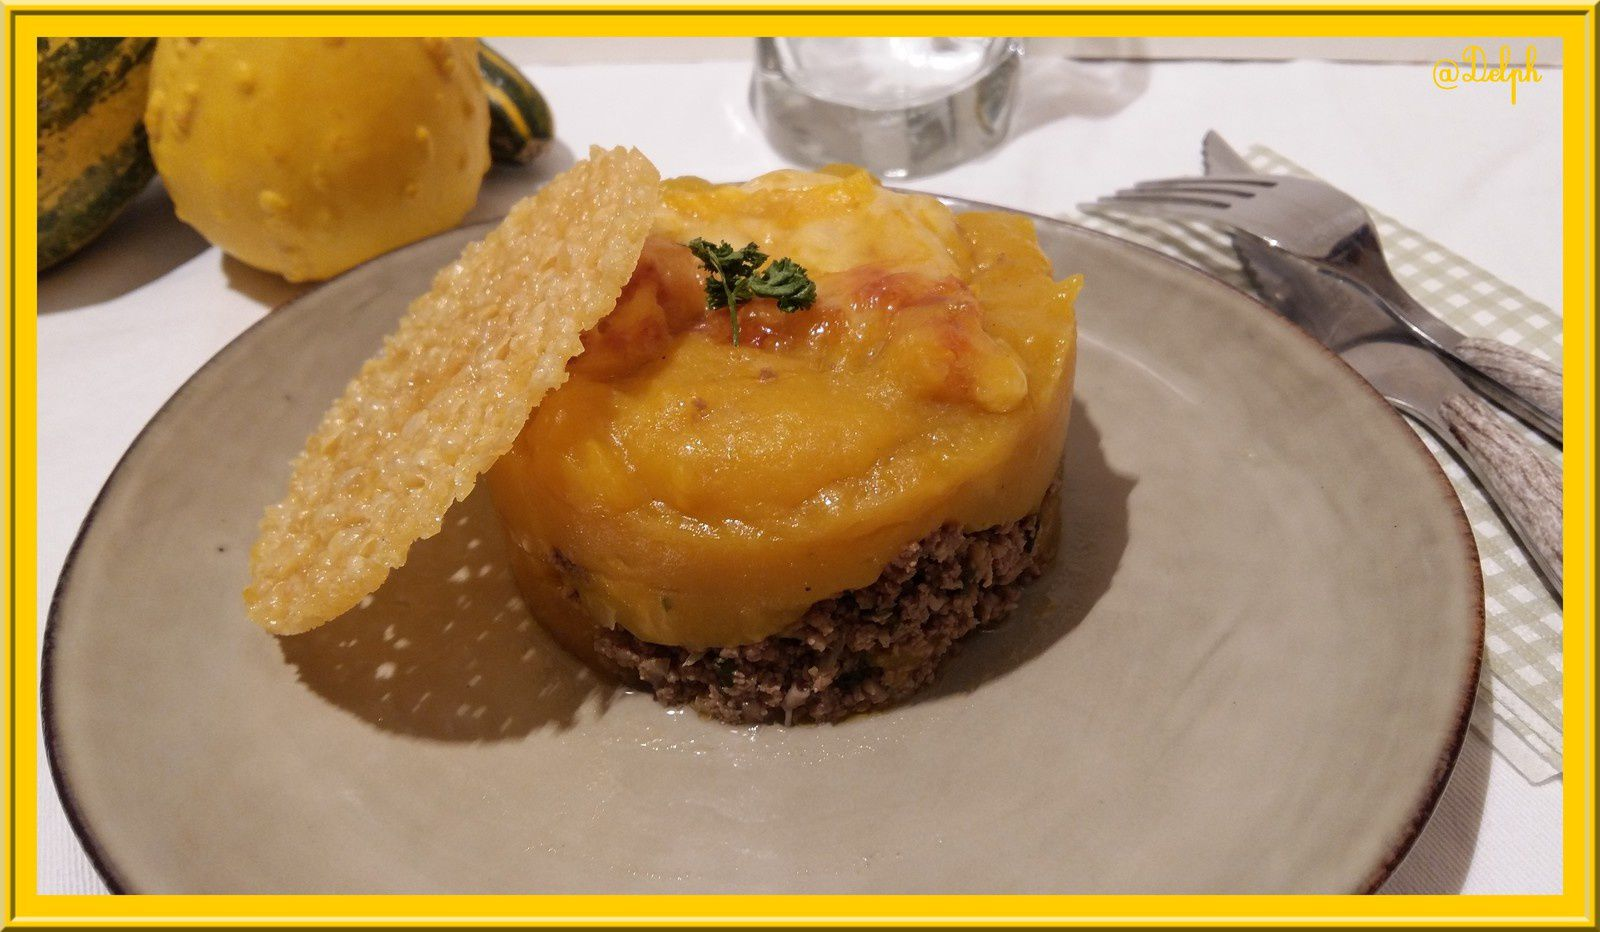 Parmentier de butternut au thermomix blogs de cuisine for Espace cuisine thermomix